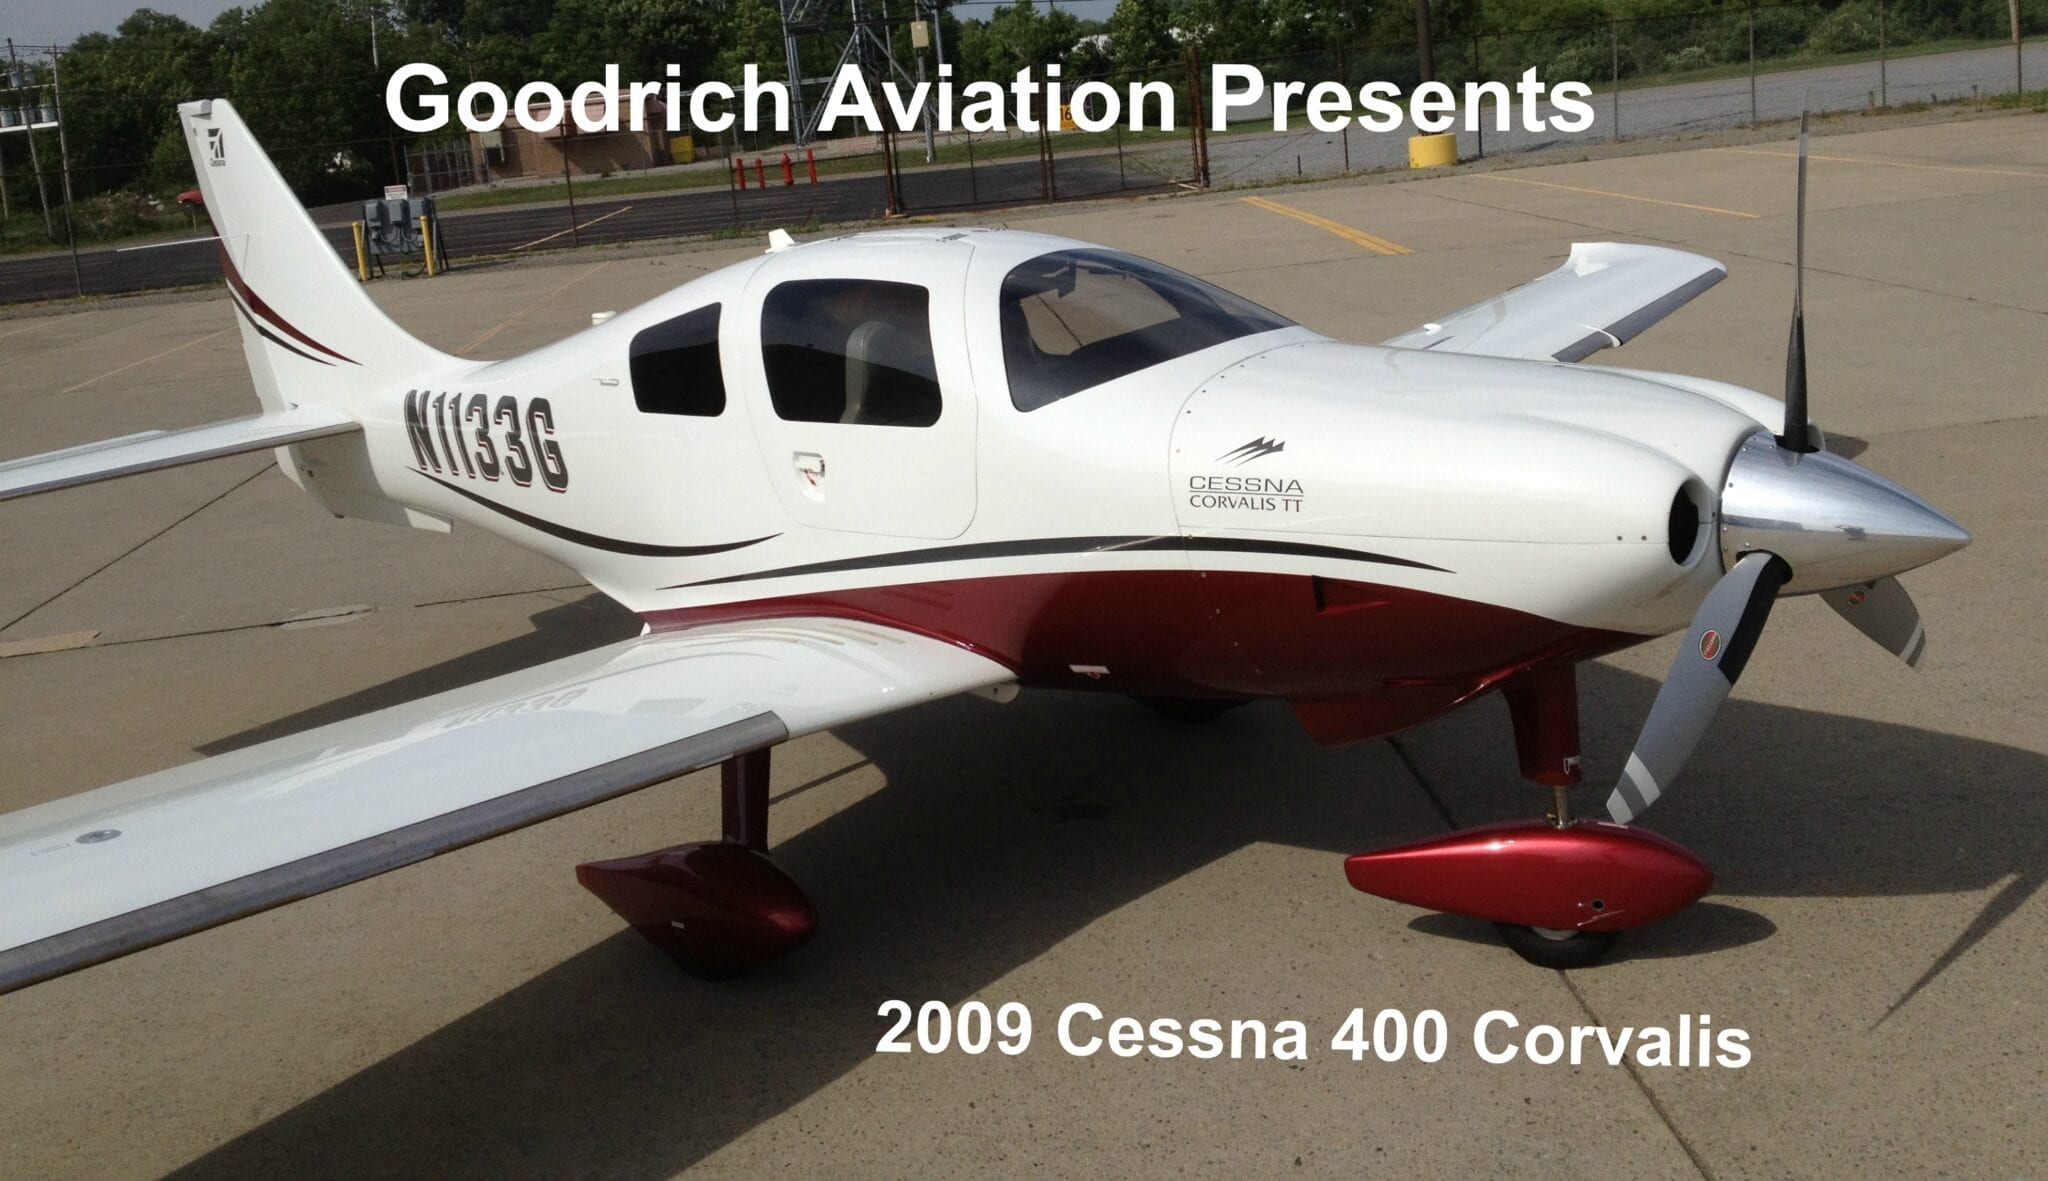 For Sale — 2009 Cessna 400 Corvalis TT N1133G – Goodrich